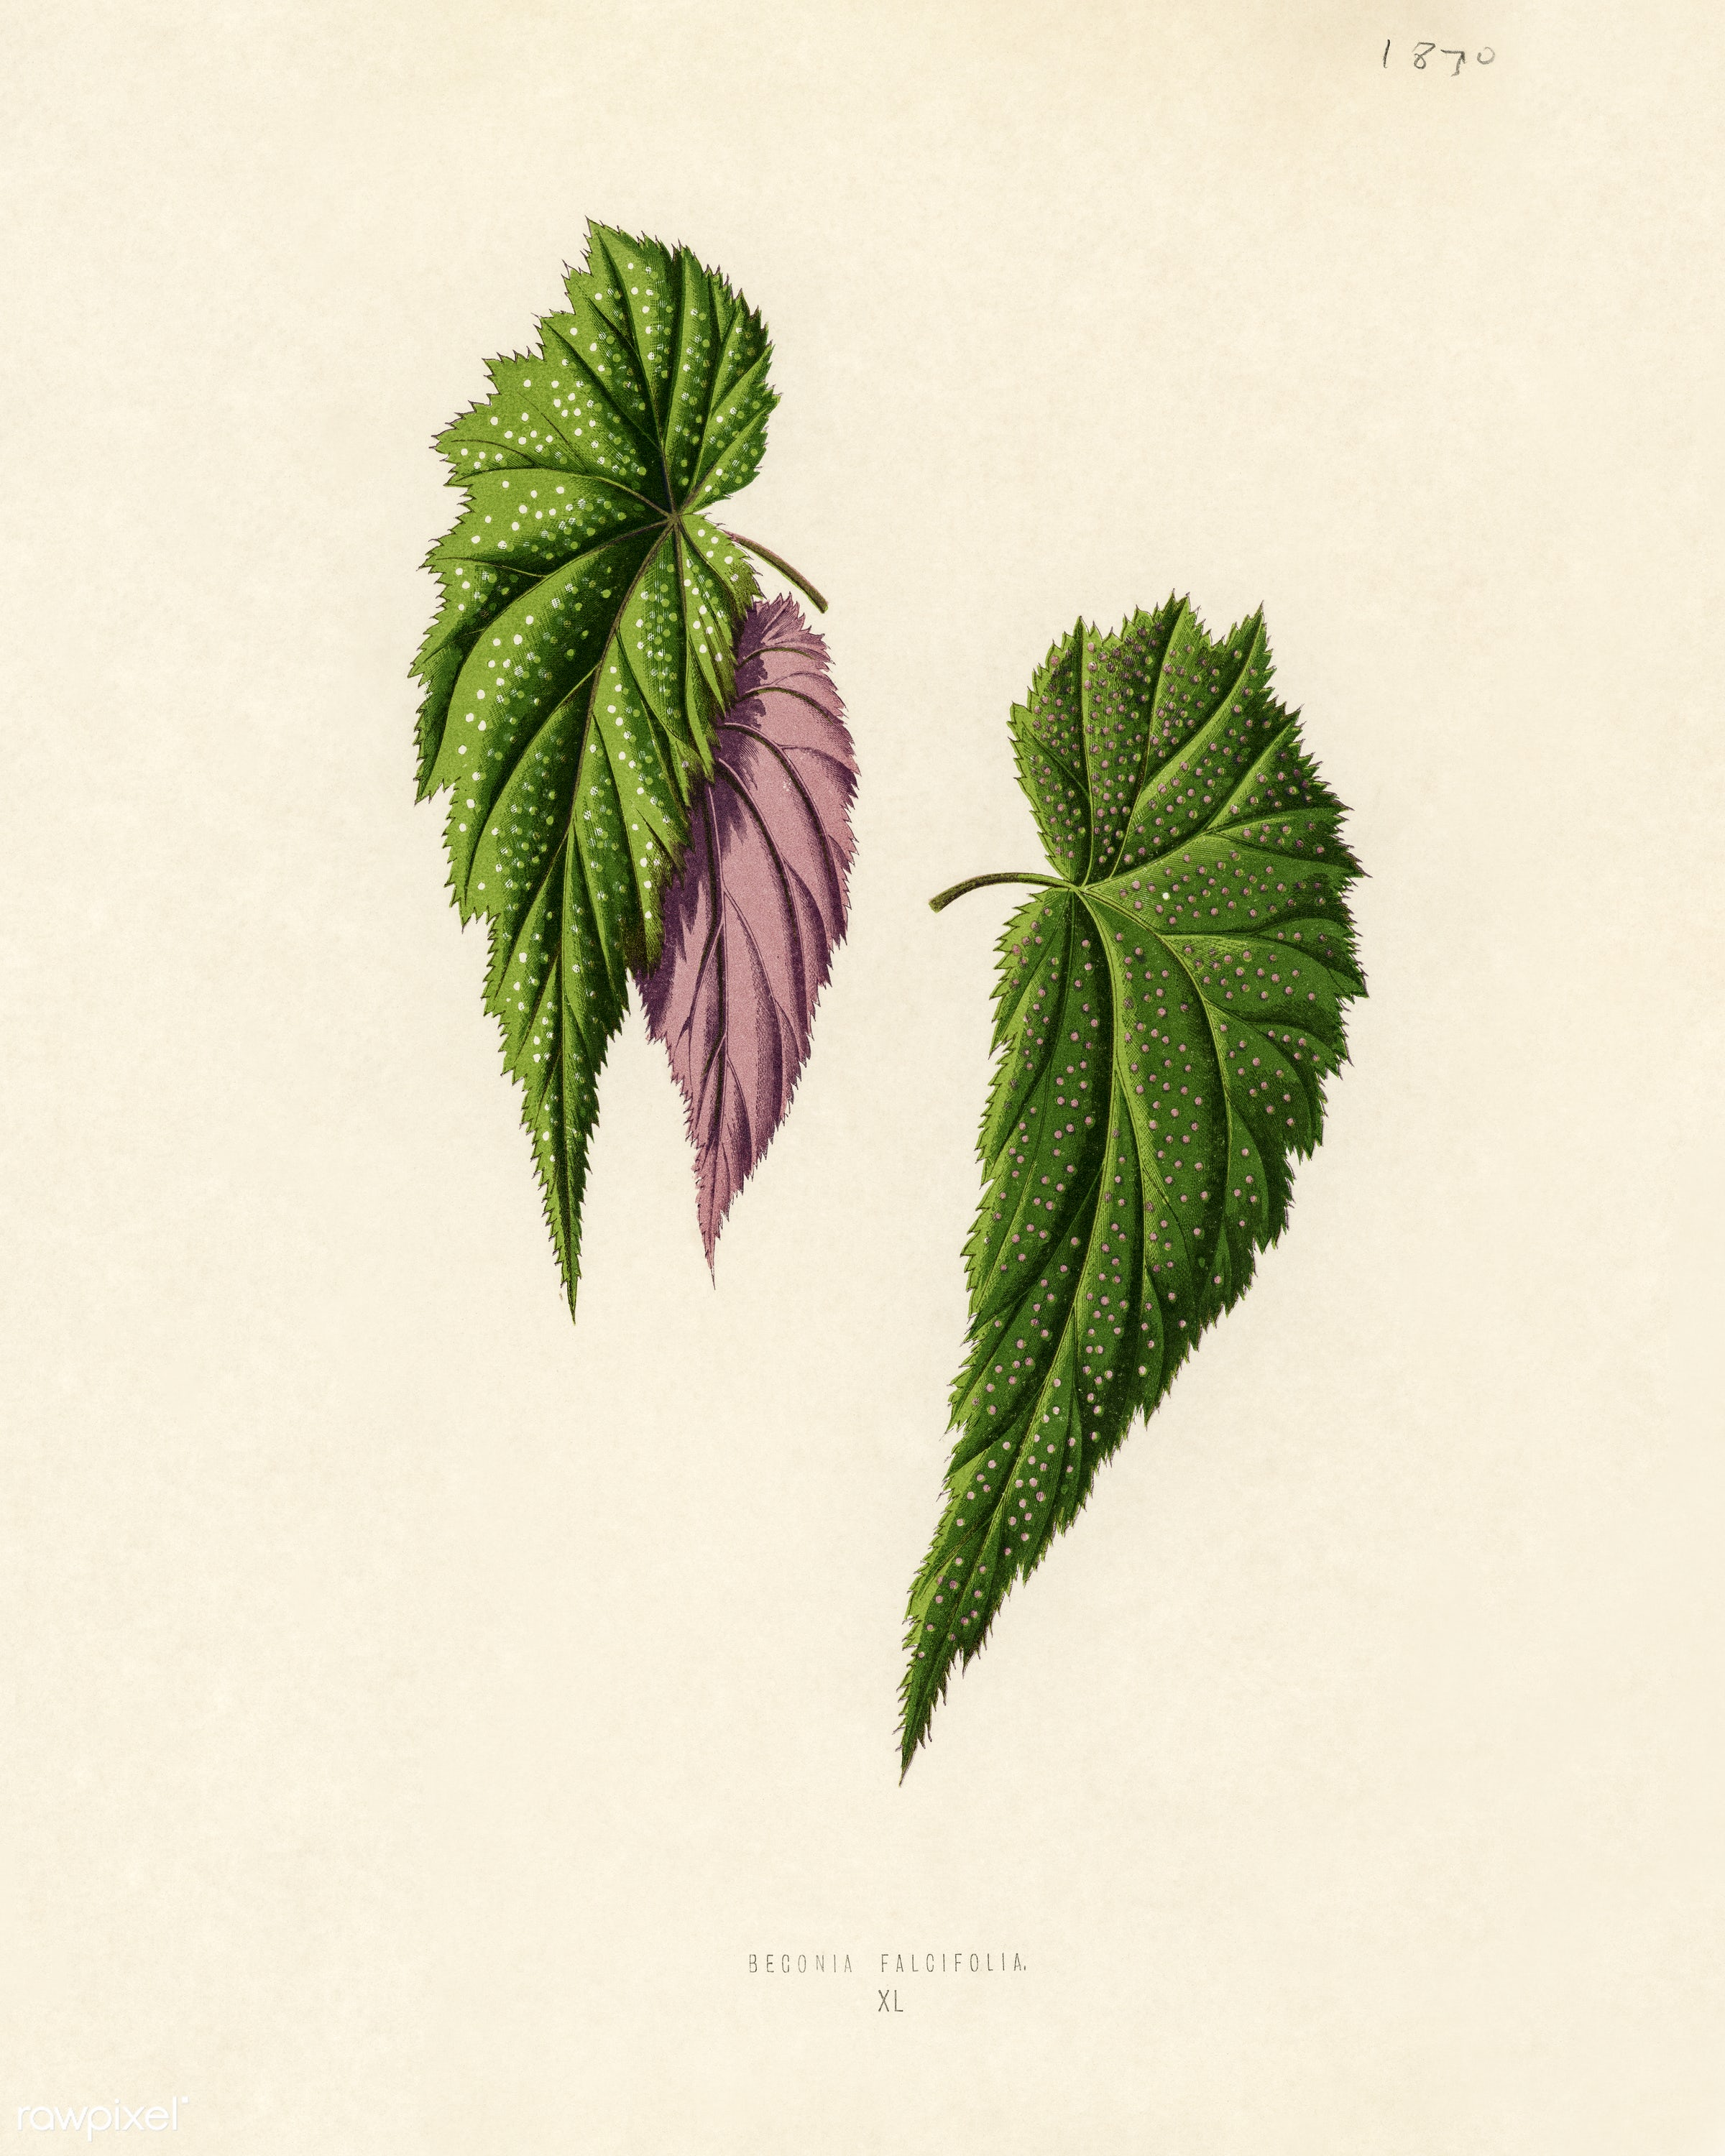 Begonia Falcifolia engraved by Benjamin Fawcett (1808-1893) for Shirley Hibberd's (1825-1890) New and Rare Beautiful-...